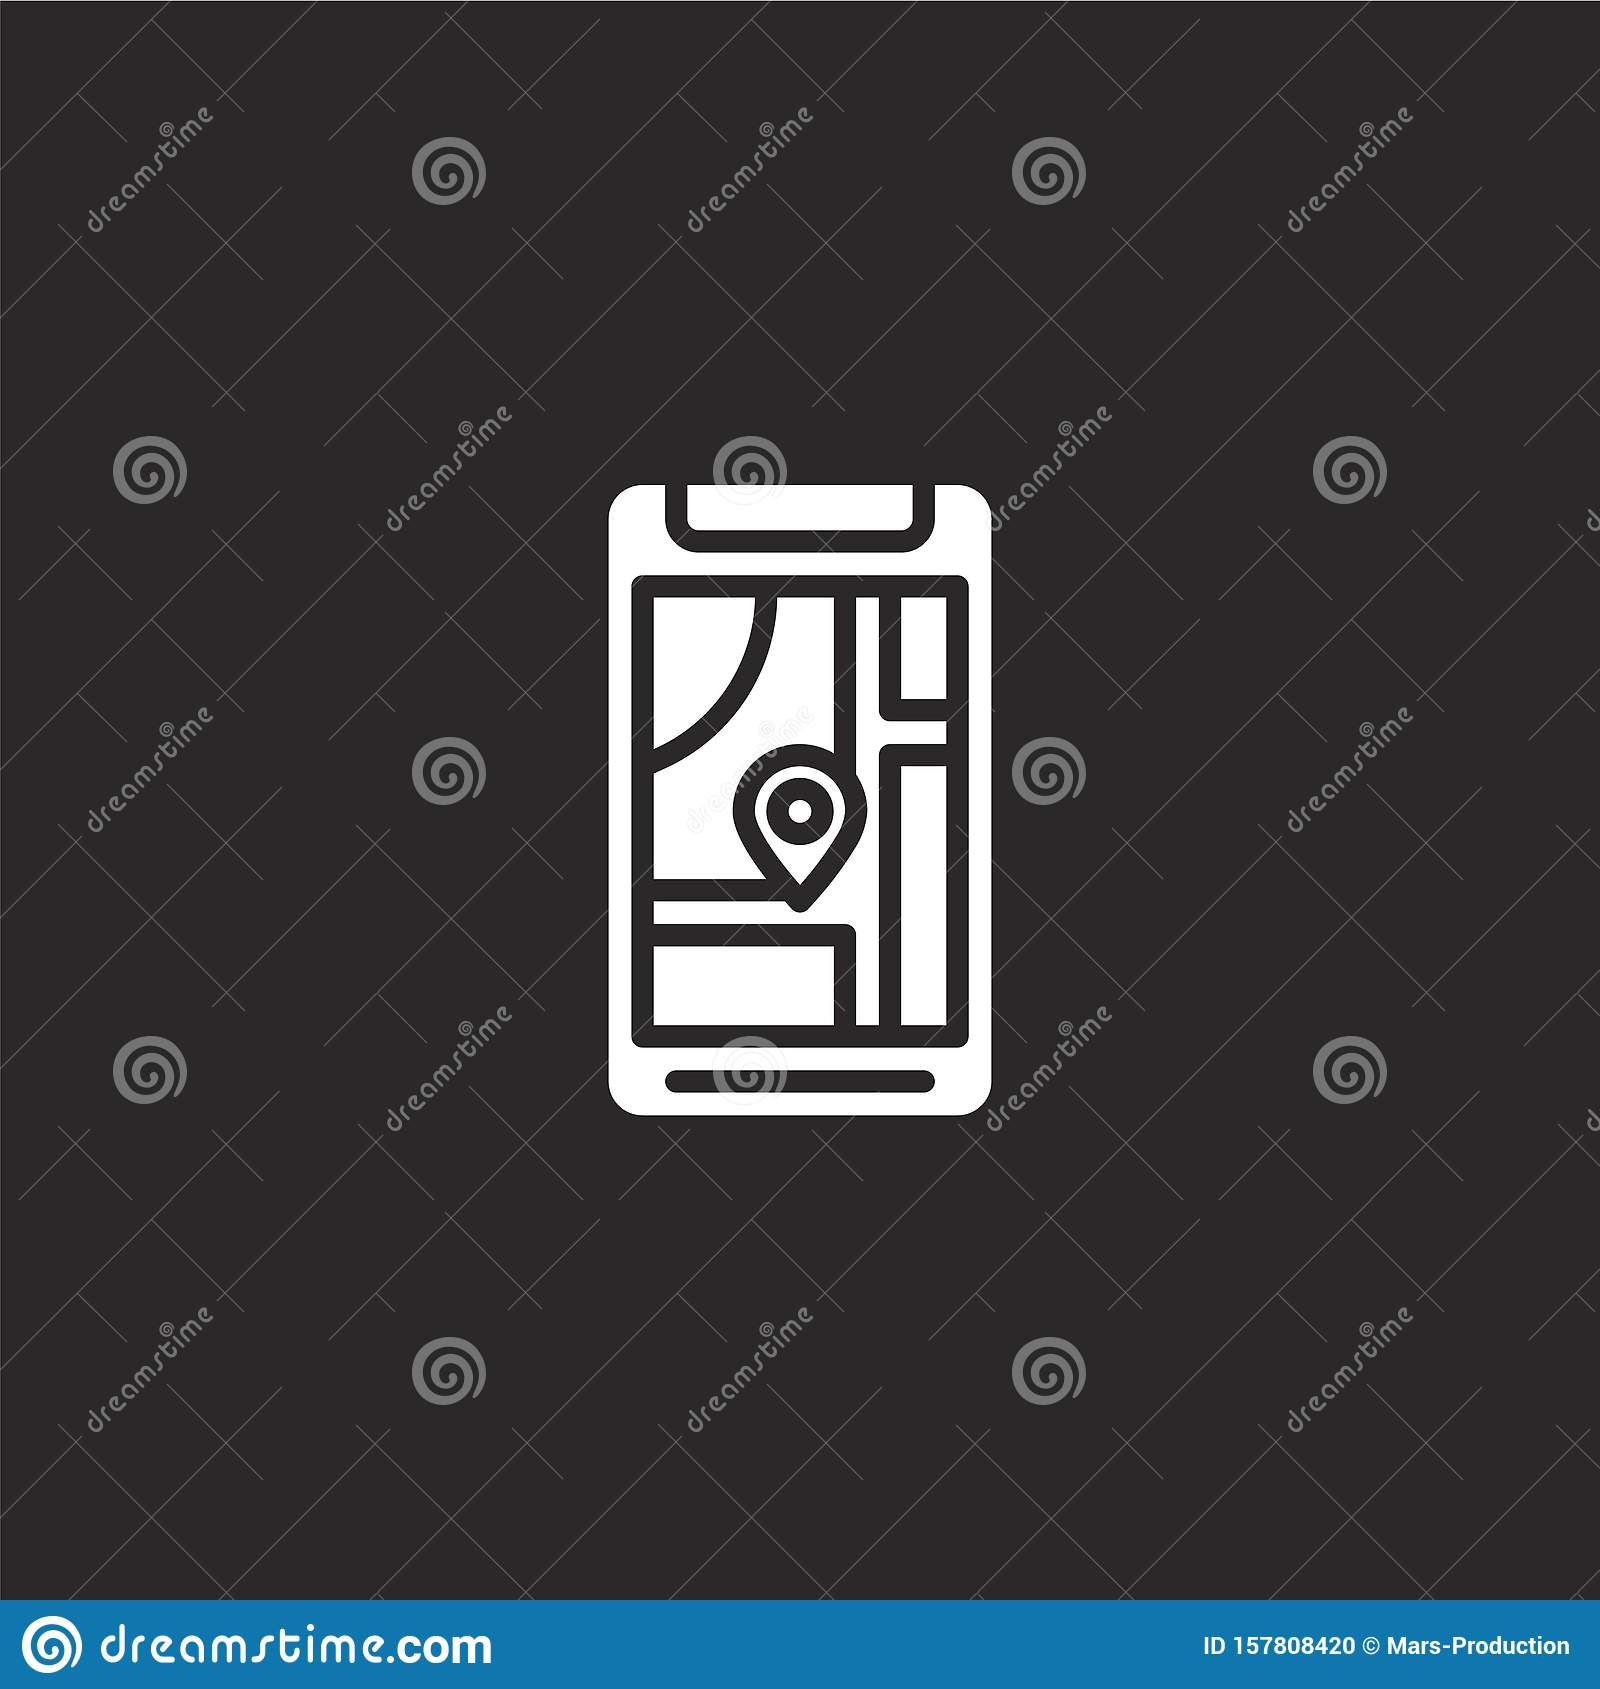 map icon. Filled map icon for website design and mobile, app development. map icon from filled smartphone collection isolated on